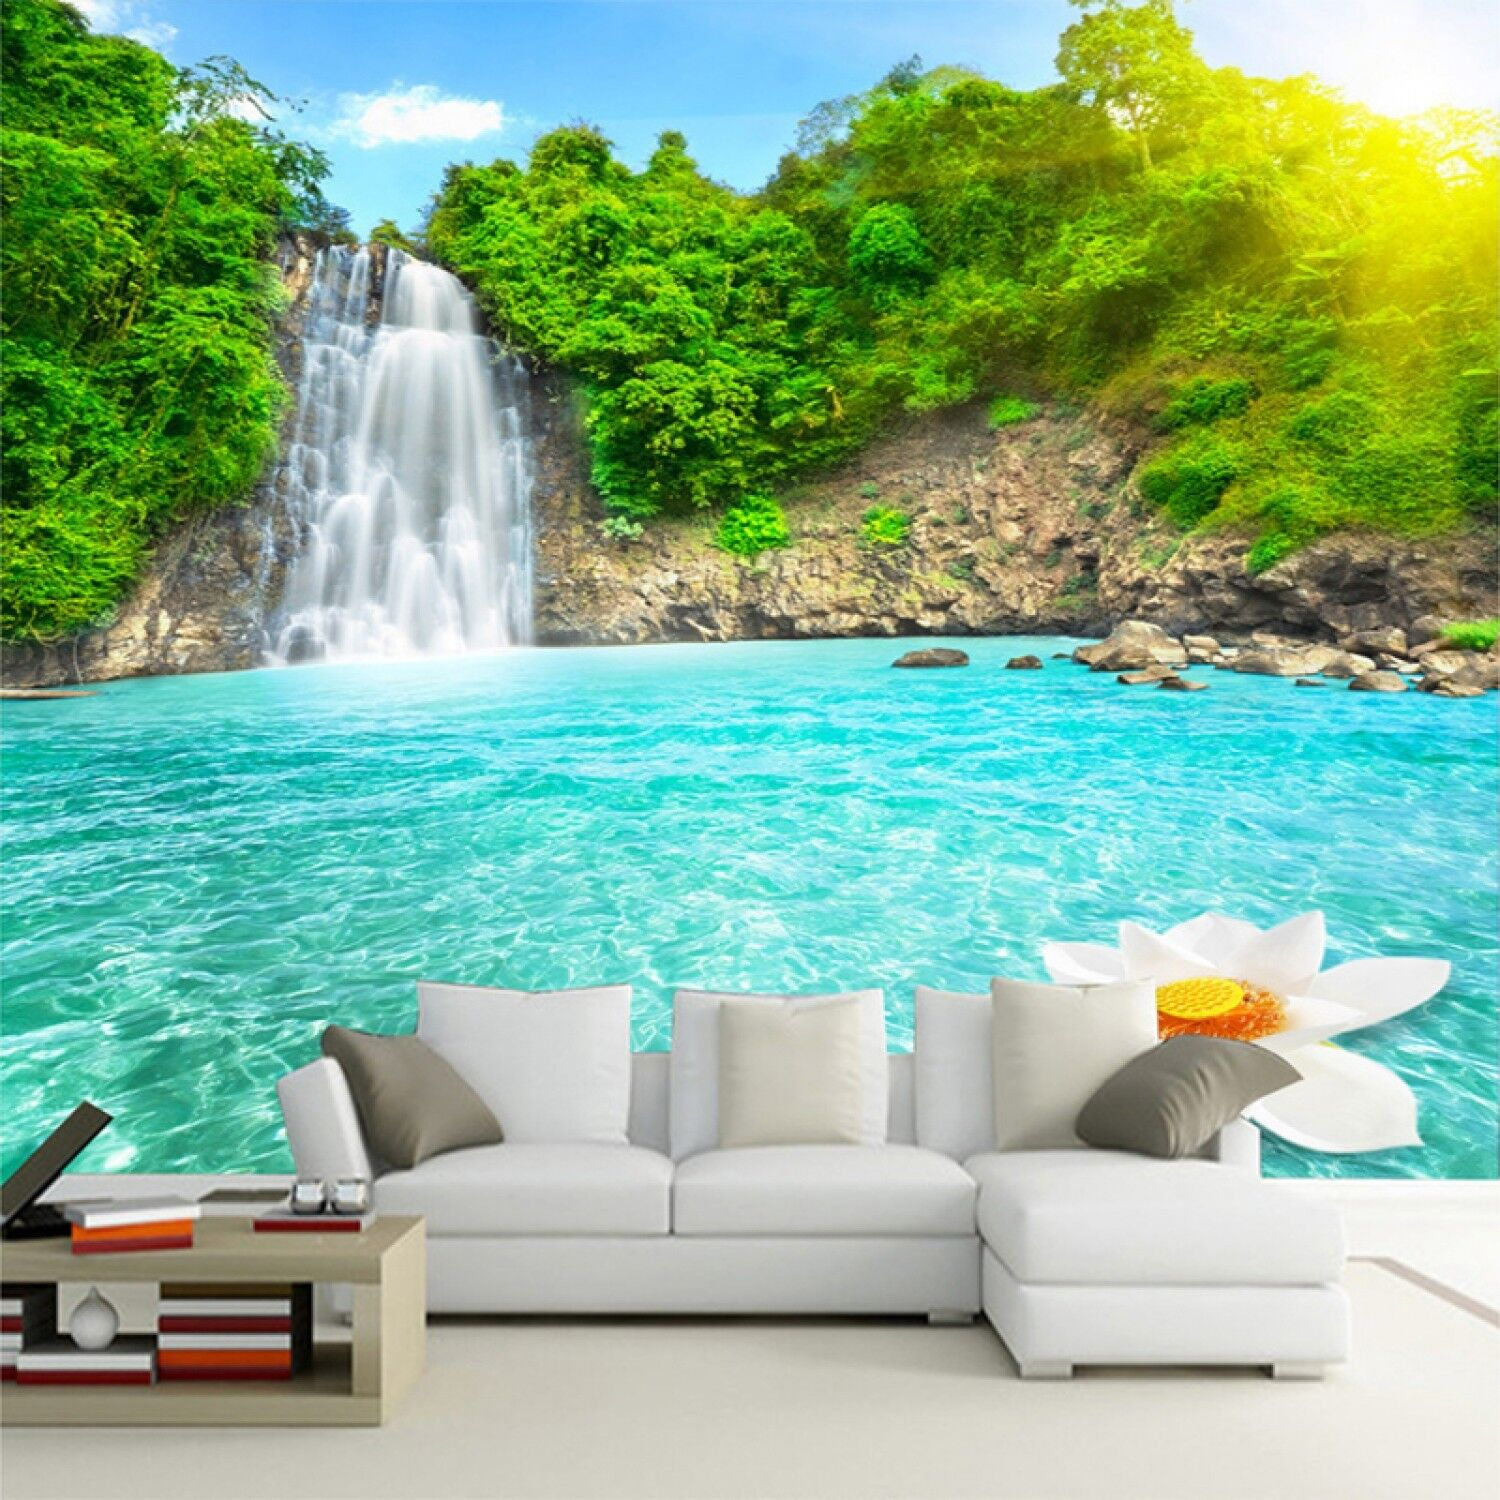 Natural Scenery 3D Wall Mural Forest Waterfalls Pools Photo